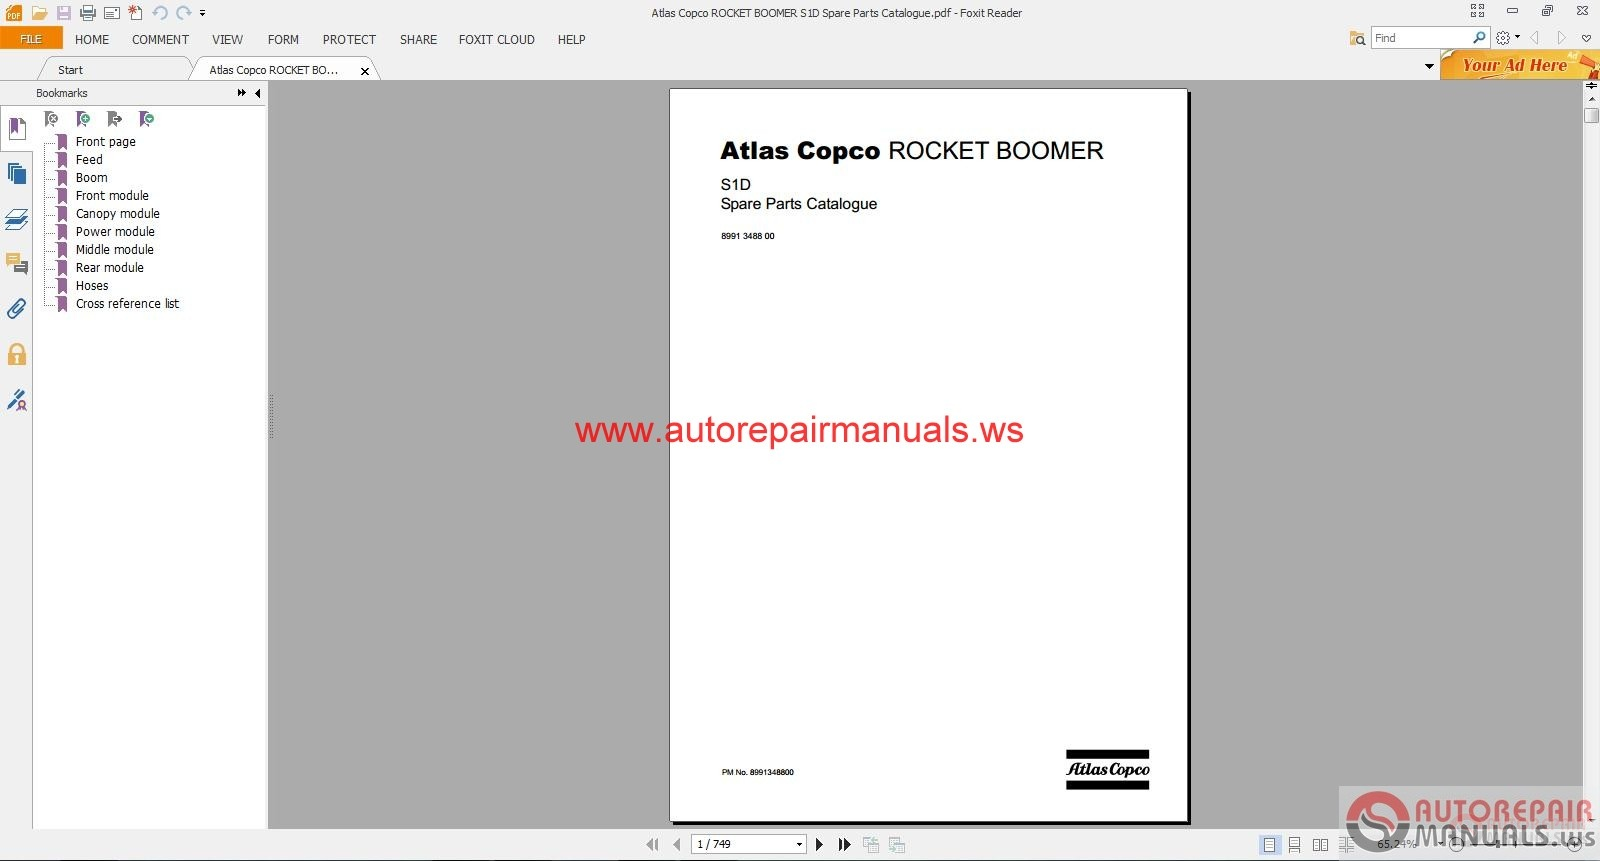 atlas copco rocket boomer s1d spare parts catalogue auto repair atlas copco rocket boomer s1d spare parts catalogue type pdf pages 749 pages language eng size 27 4mb hydraulic schematic electric diagram